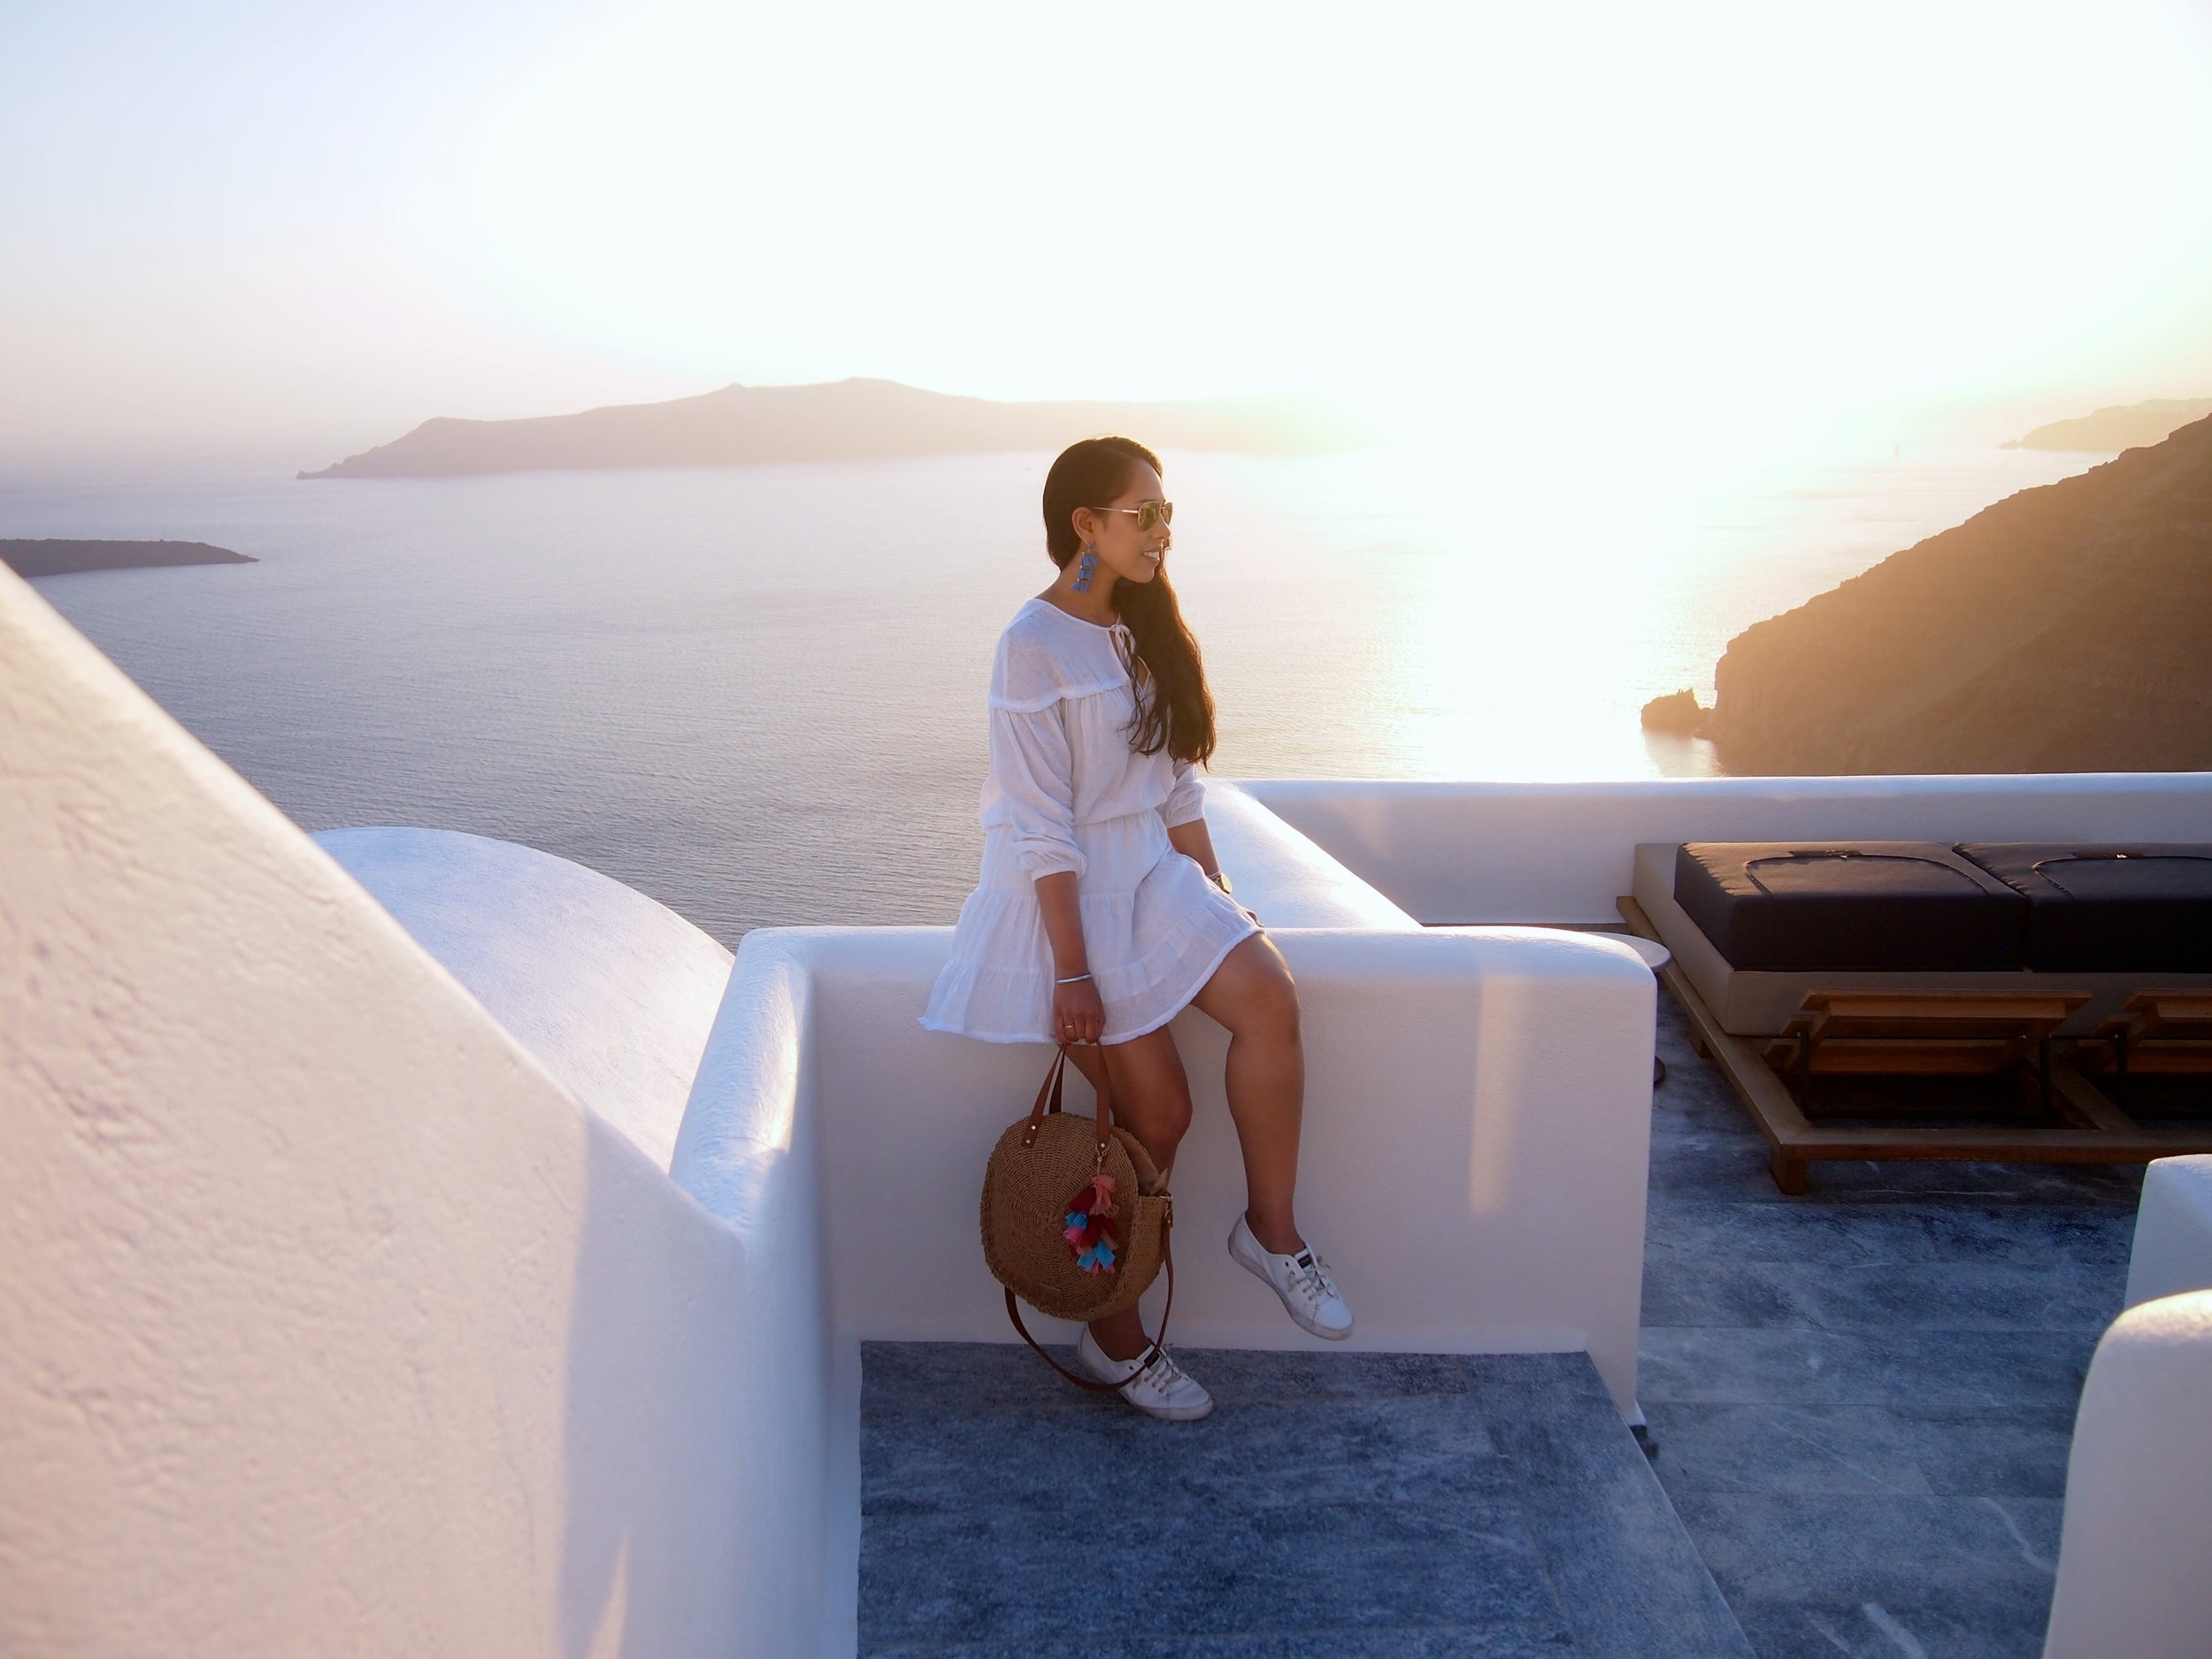 homeric-poems-sunset-firostefani-santorini.JPG